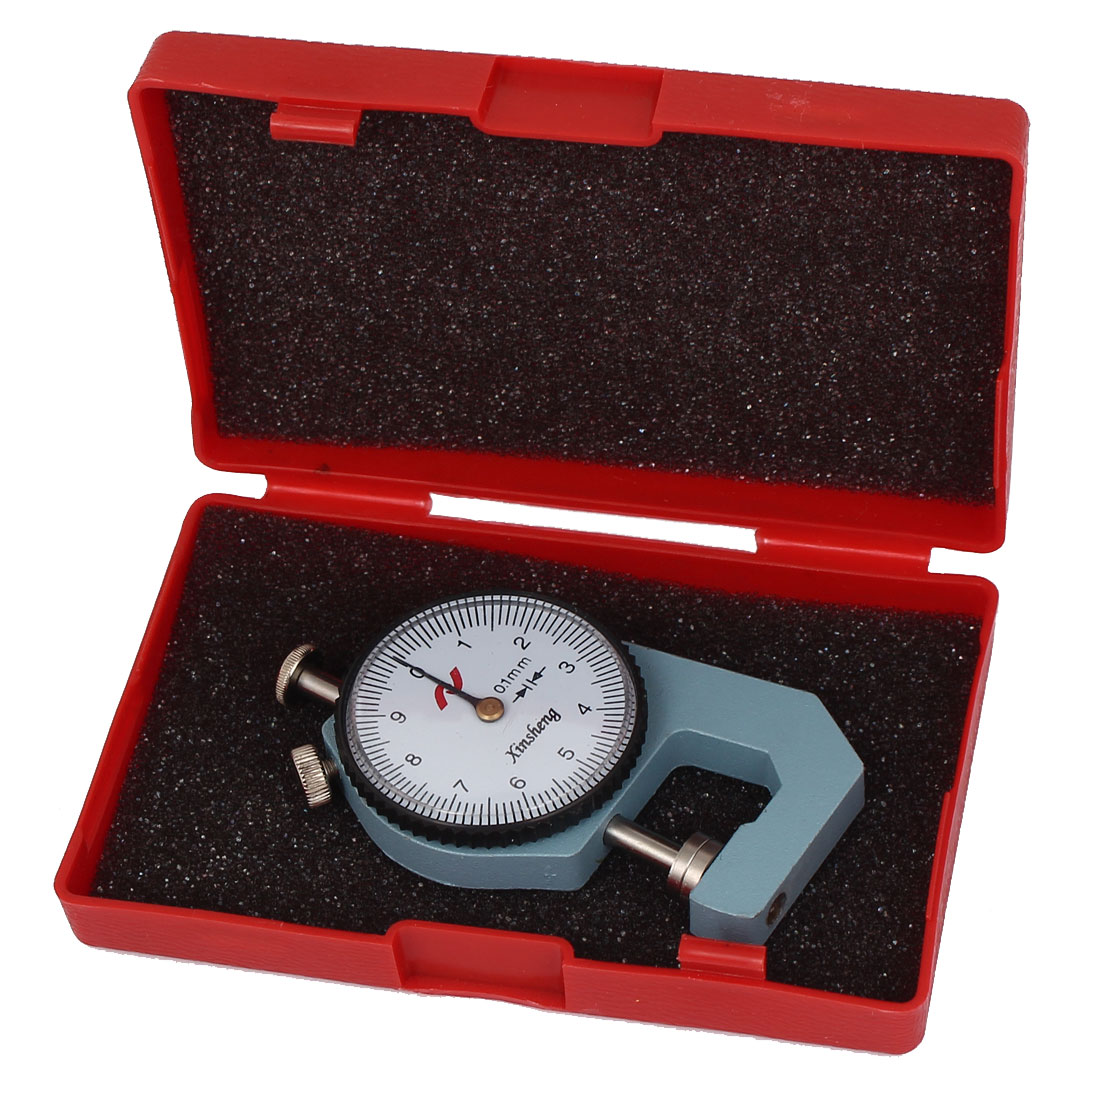 0-10mm x 0.1mm Dial Thickness Gauge Gage Measuring Tool Gray w Case